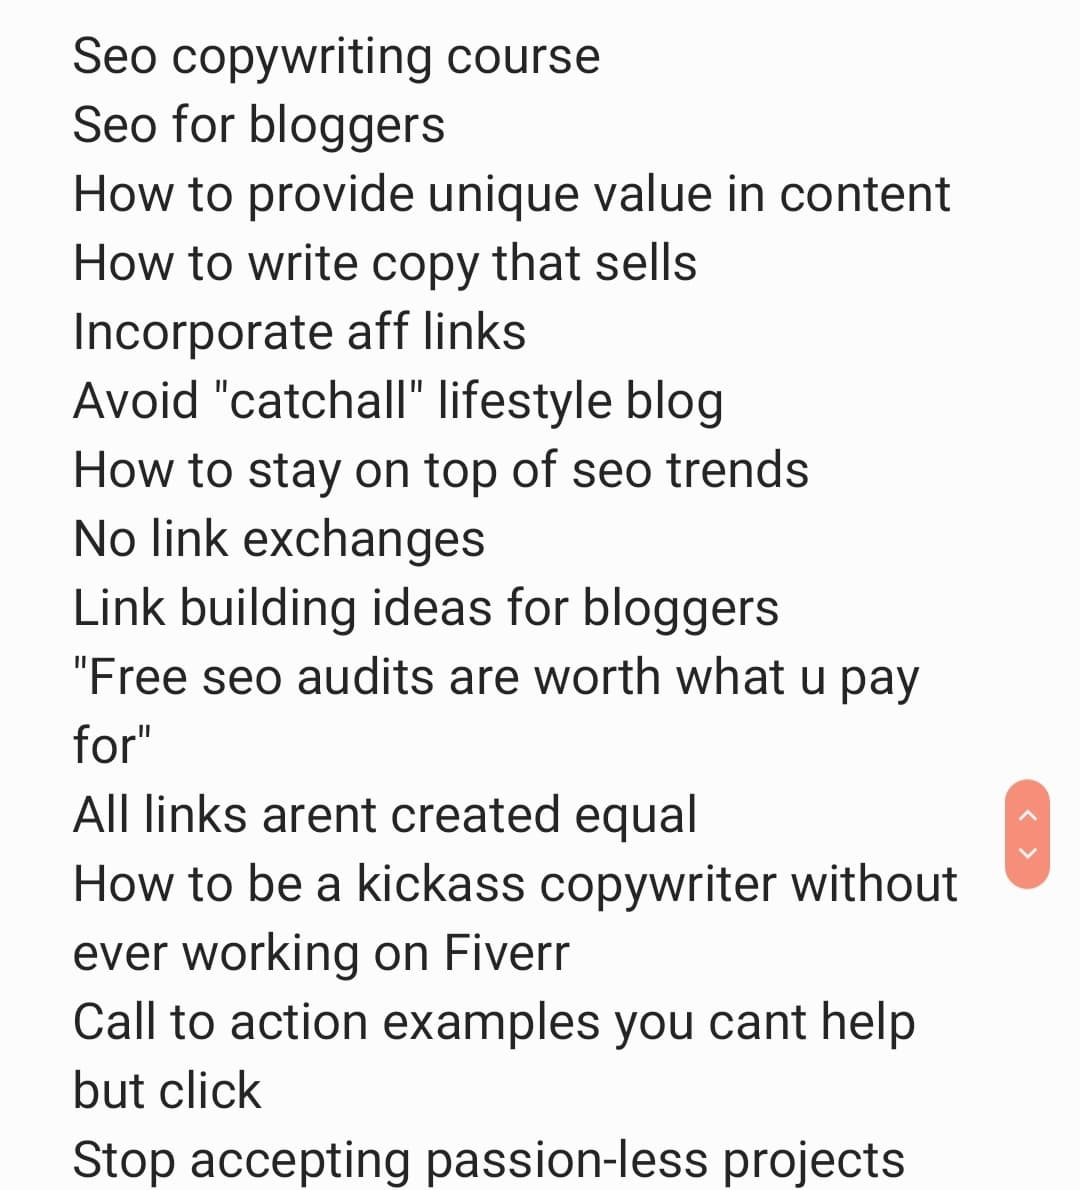 List of Keys&Copy blog post ideas